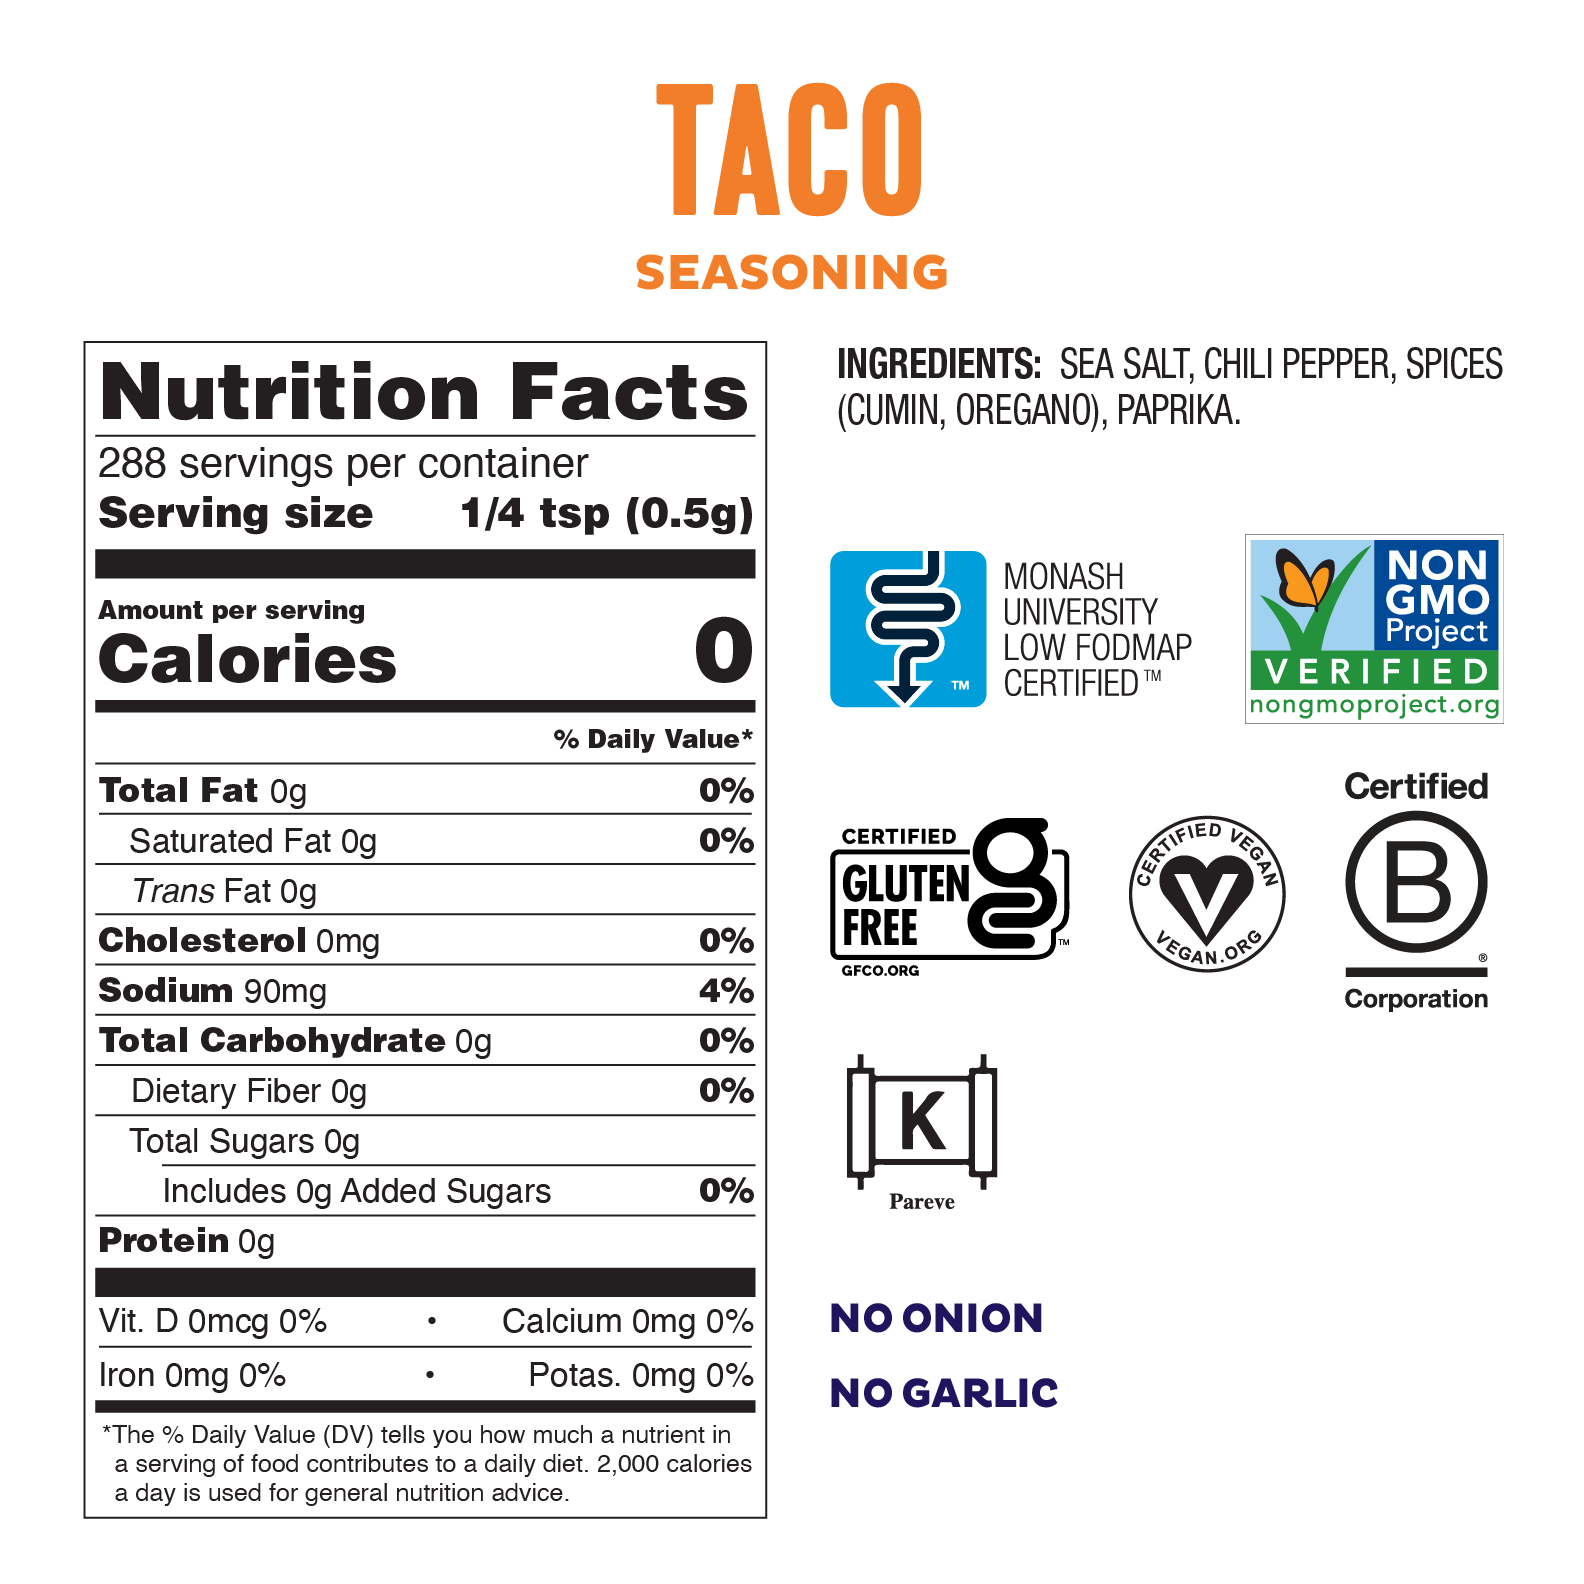 Low Fodmap Gluten Free Taco Seasoning Fody Food Co